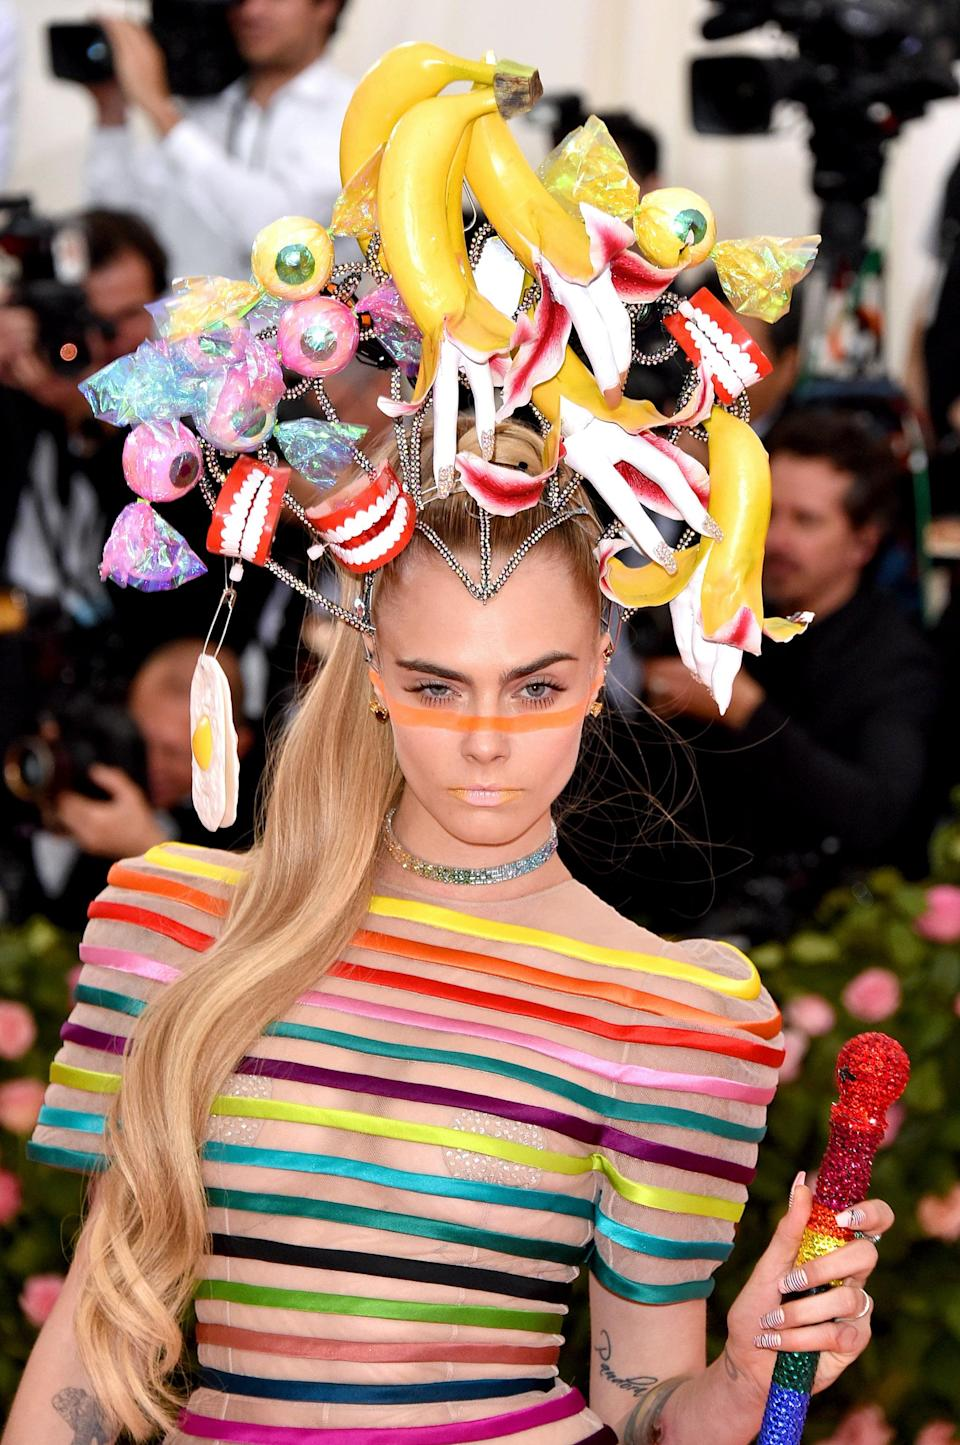 """<p>Once you register everything that's going on with <a href=""""https://www.popsugar.co.uk/fashion/photo-gallery/46115228/image/46122675/Cara-Delevingne-2019-Met-Gala"""" class=""""link rapid-noclick-resp"""" rel=""""nofollow noopener"""" target=""""_blank"""" data-ylk=""""slk:Delevingne's over-the-top headpiece at the 2019 Met Gala"""">Delevingne's over-the-top headpiece at the 2019 Met Gala</a>, make sure you look down at her waist-length ponytail - a style we don't often seem from the star.</p>"""